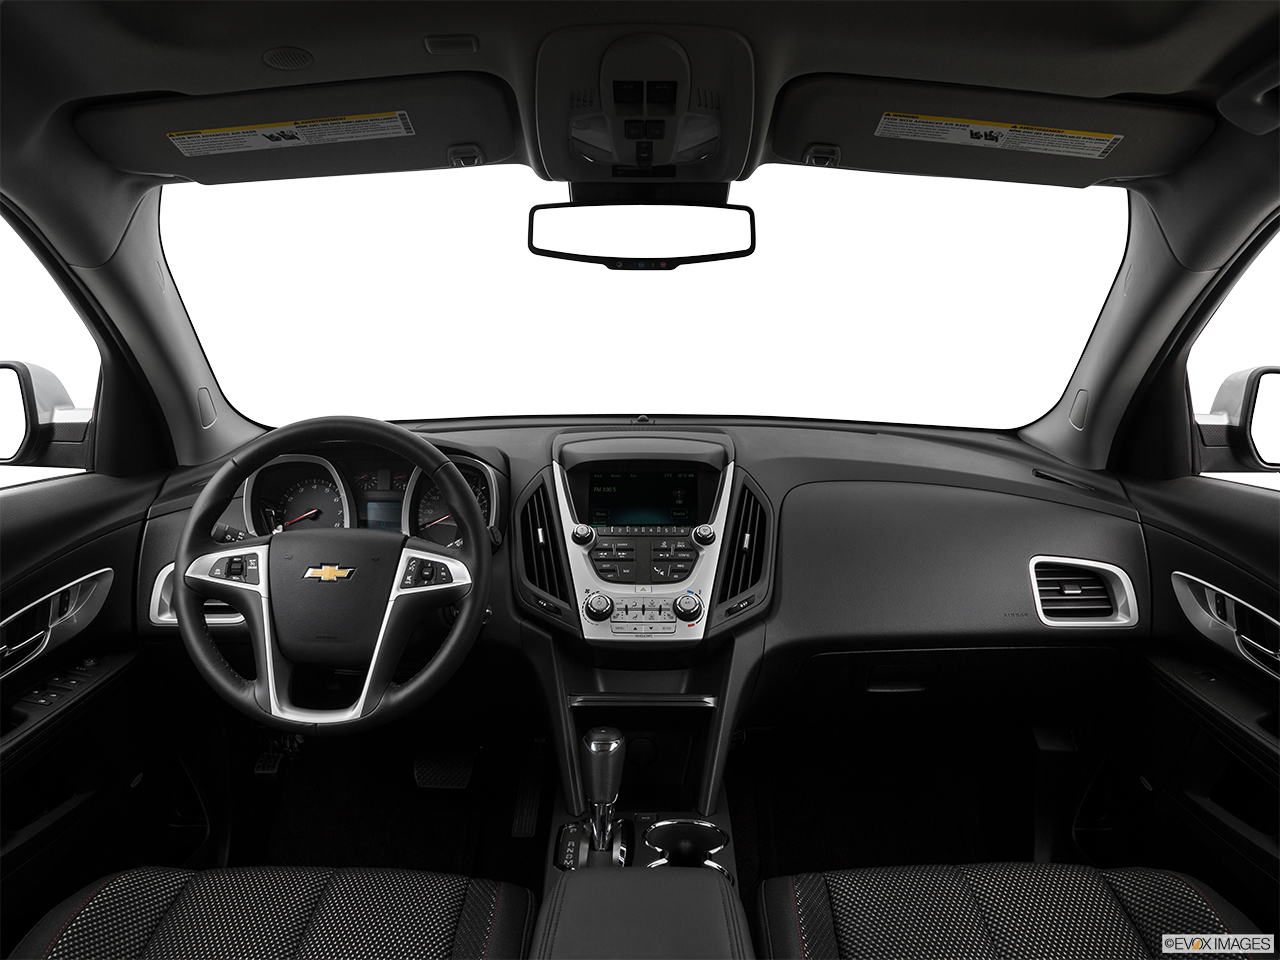 Interior View Of 2017 Chevrolet Equinox In Reno